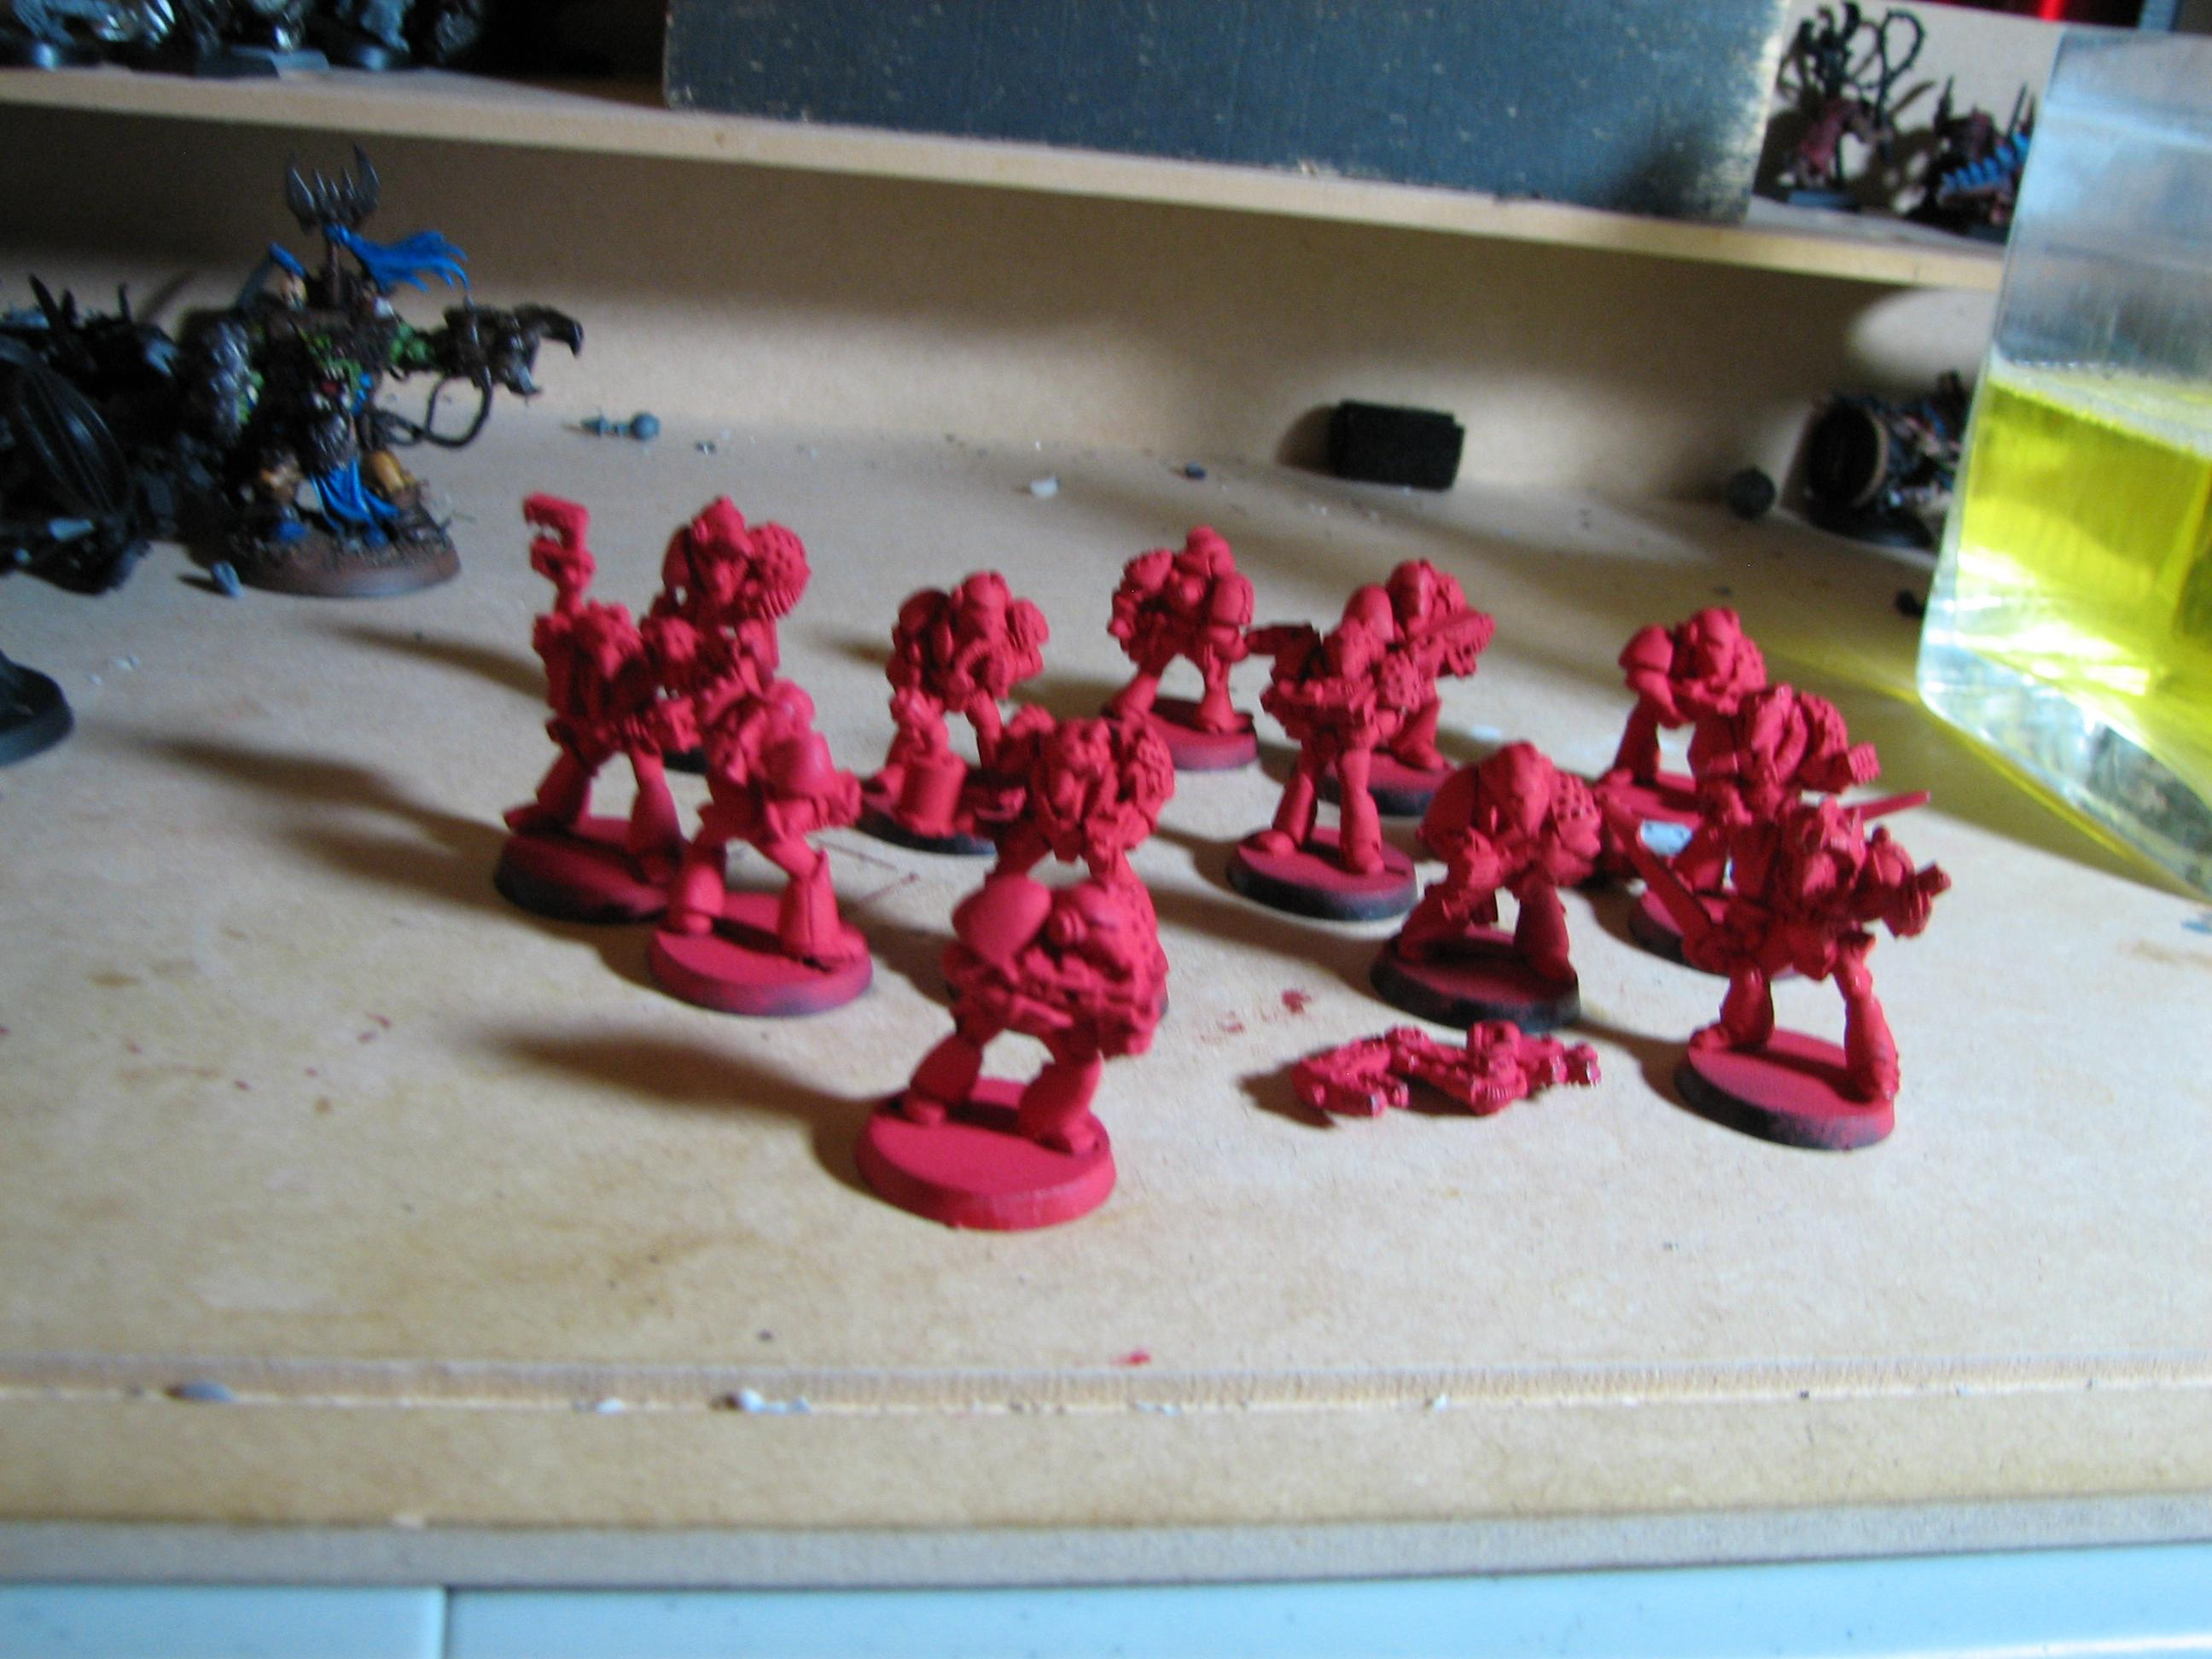 80s, Beakies, In, Lead, Progress, Space, Space Marines, Warhammer 40,000, Warhammer Fantasy, Work